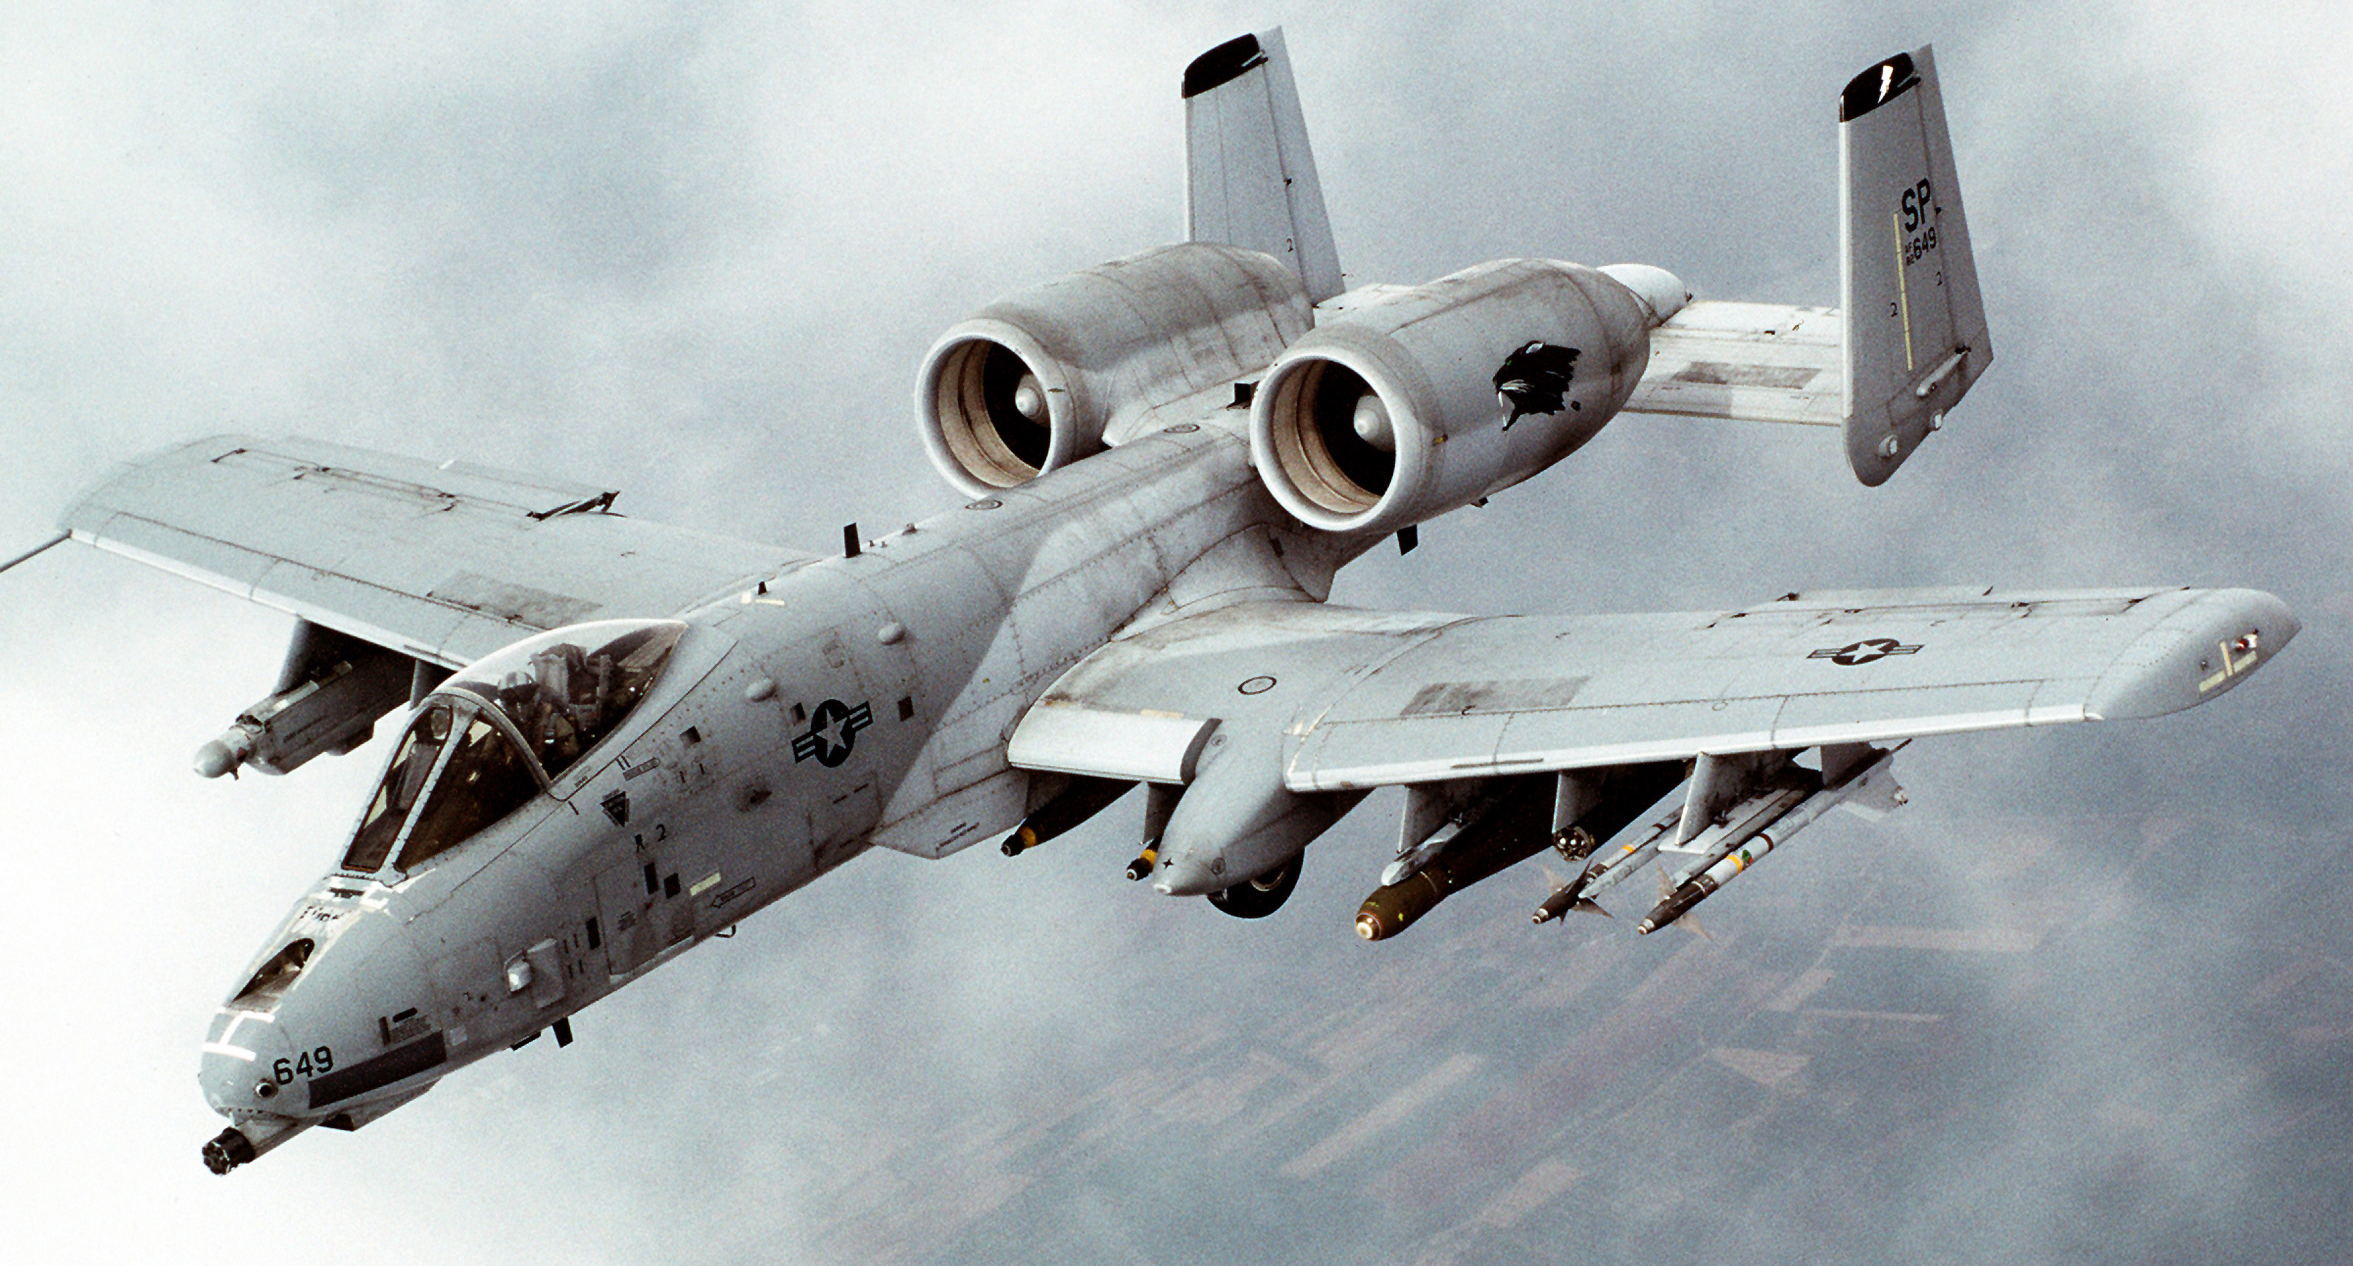 fairchild republic a10 warthog